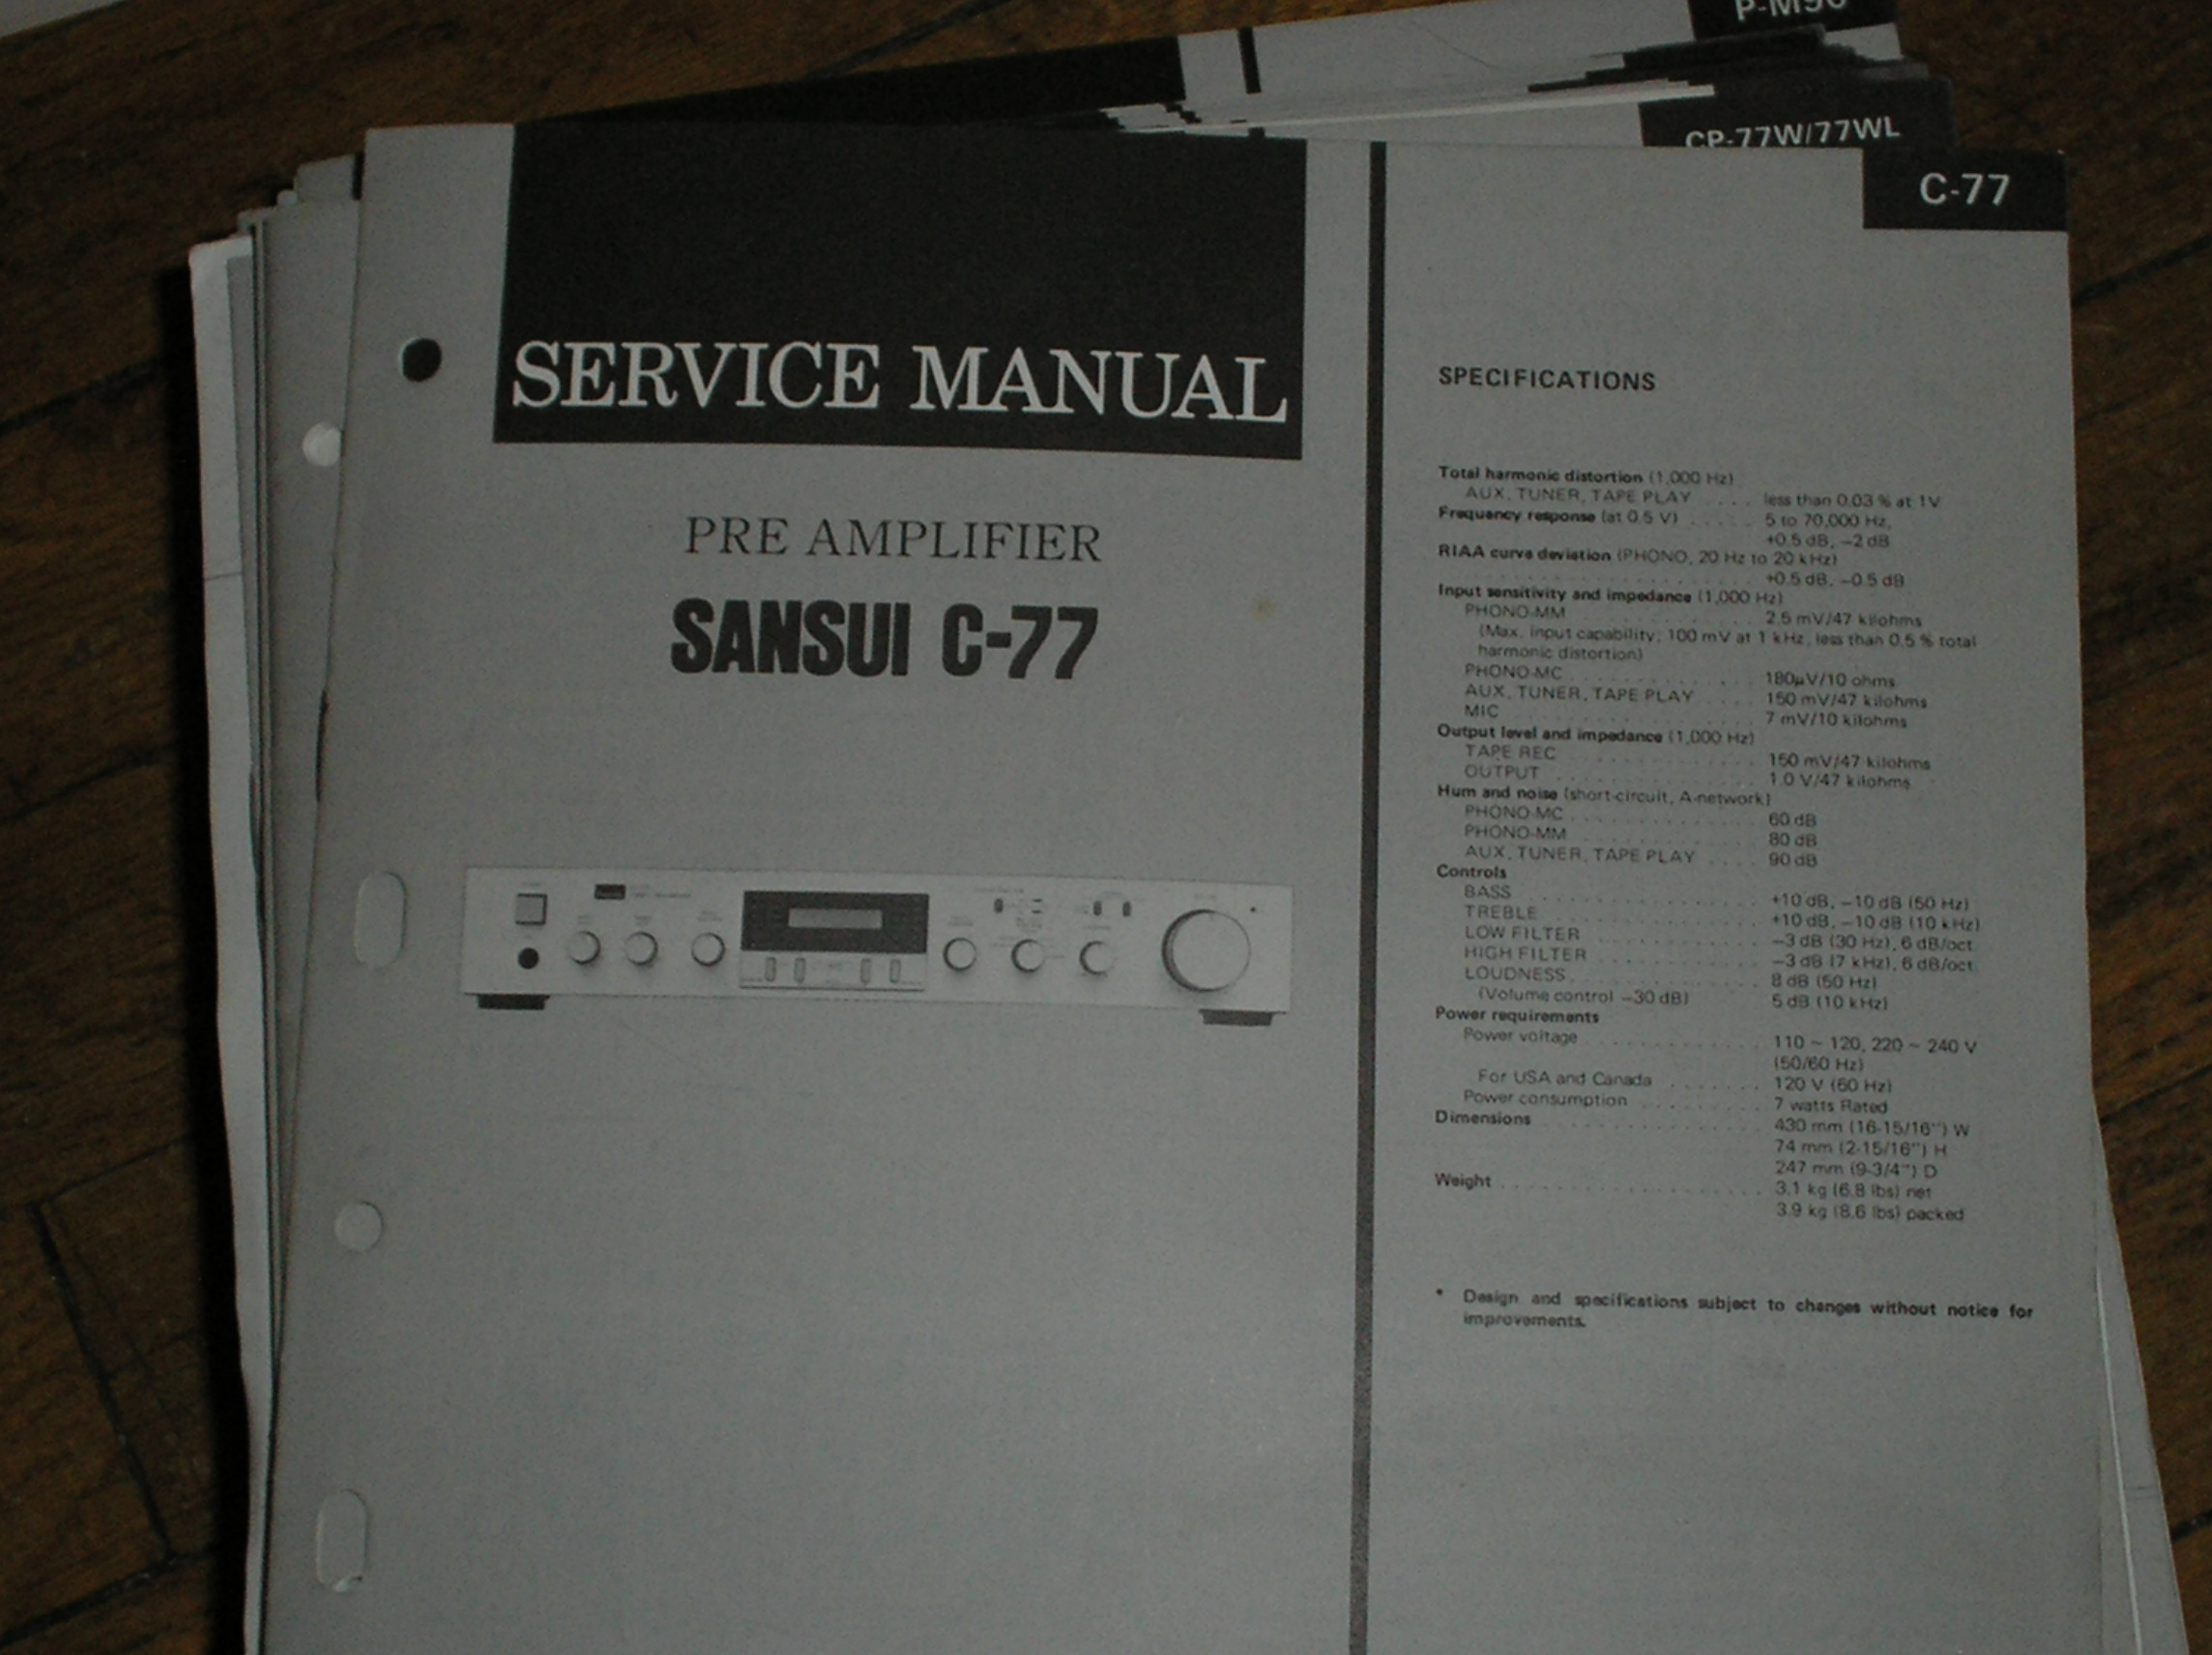 C-77 Pre-Amplifier Service Manual